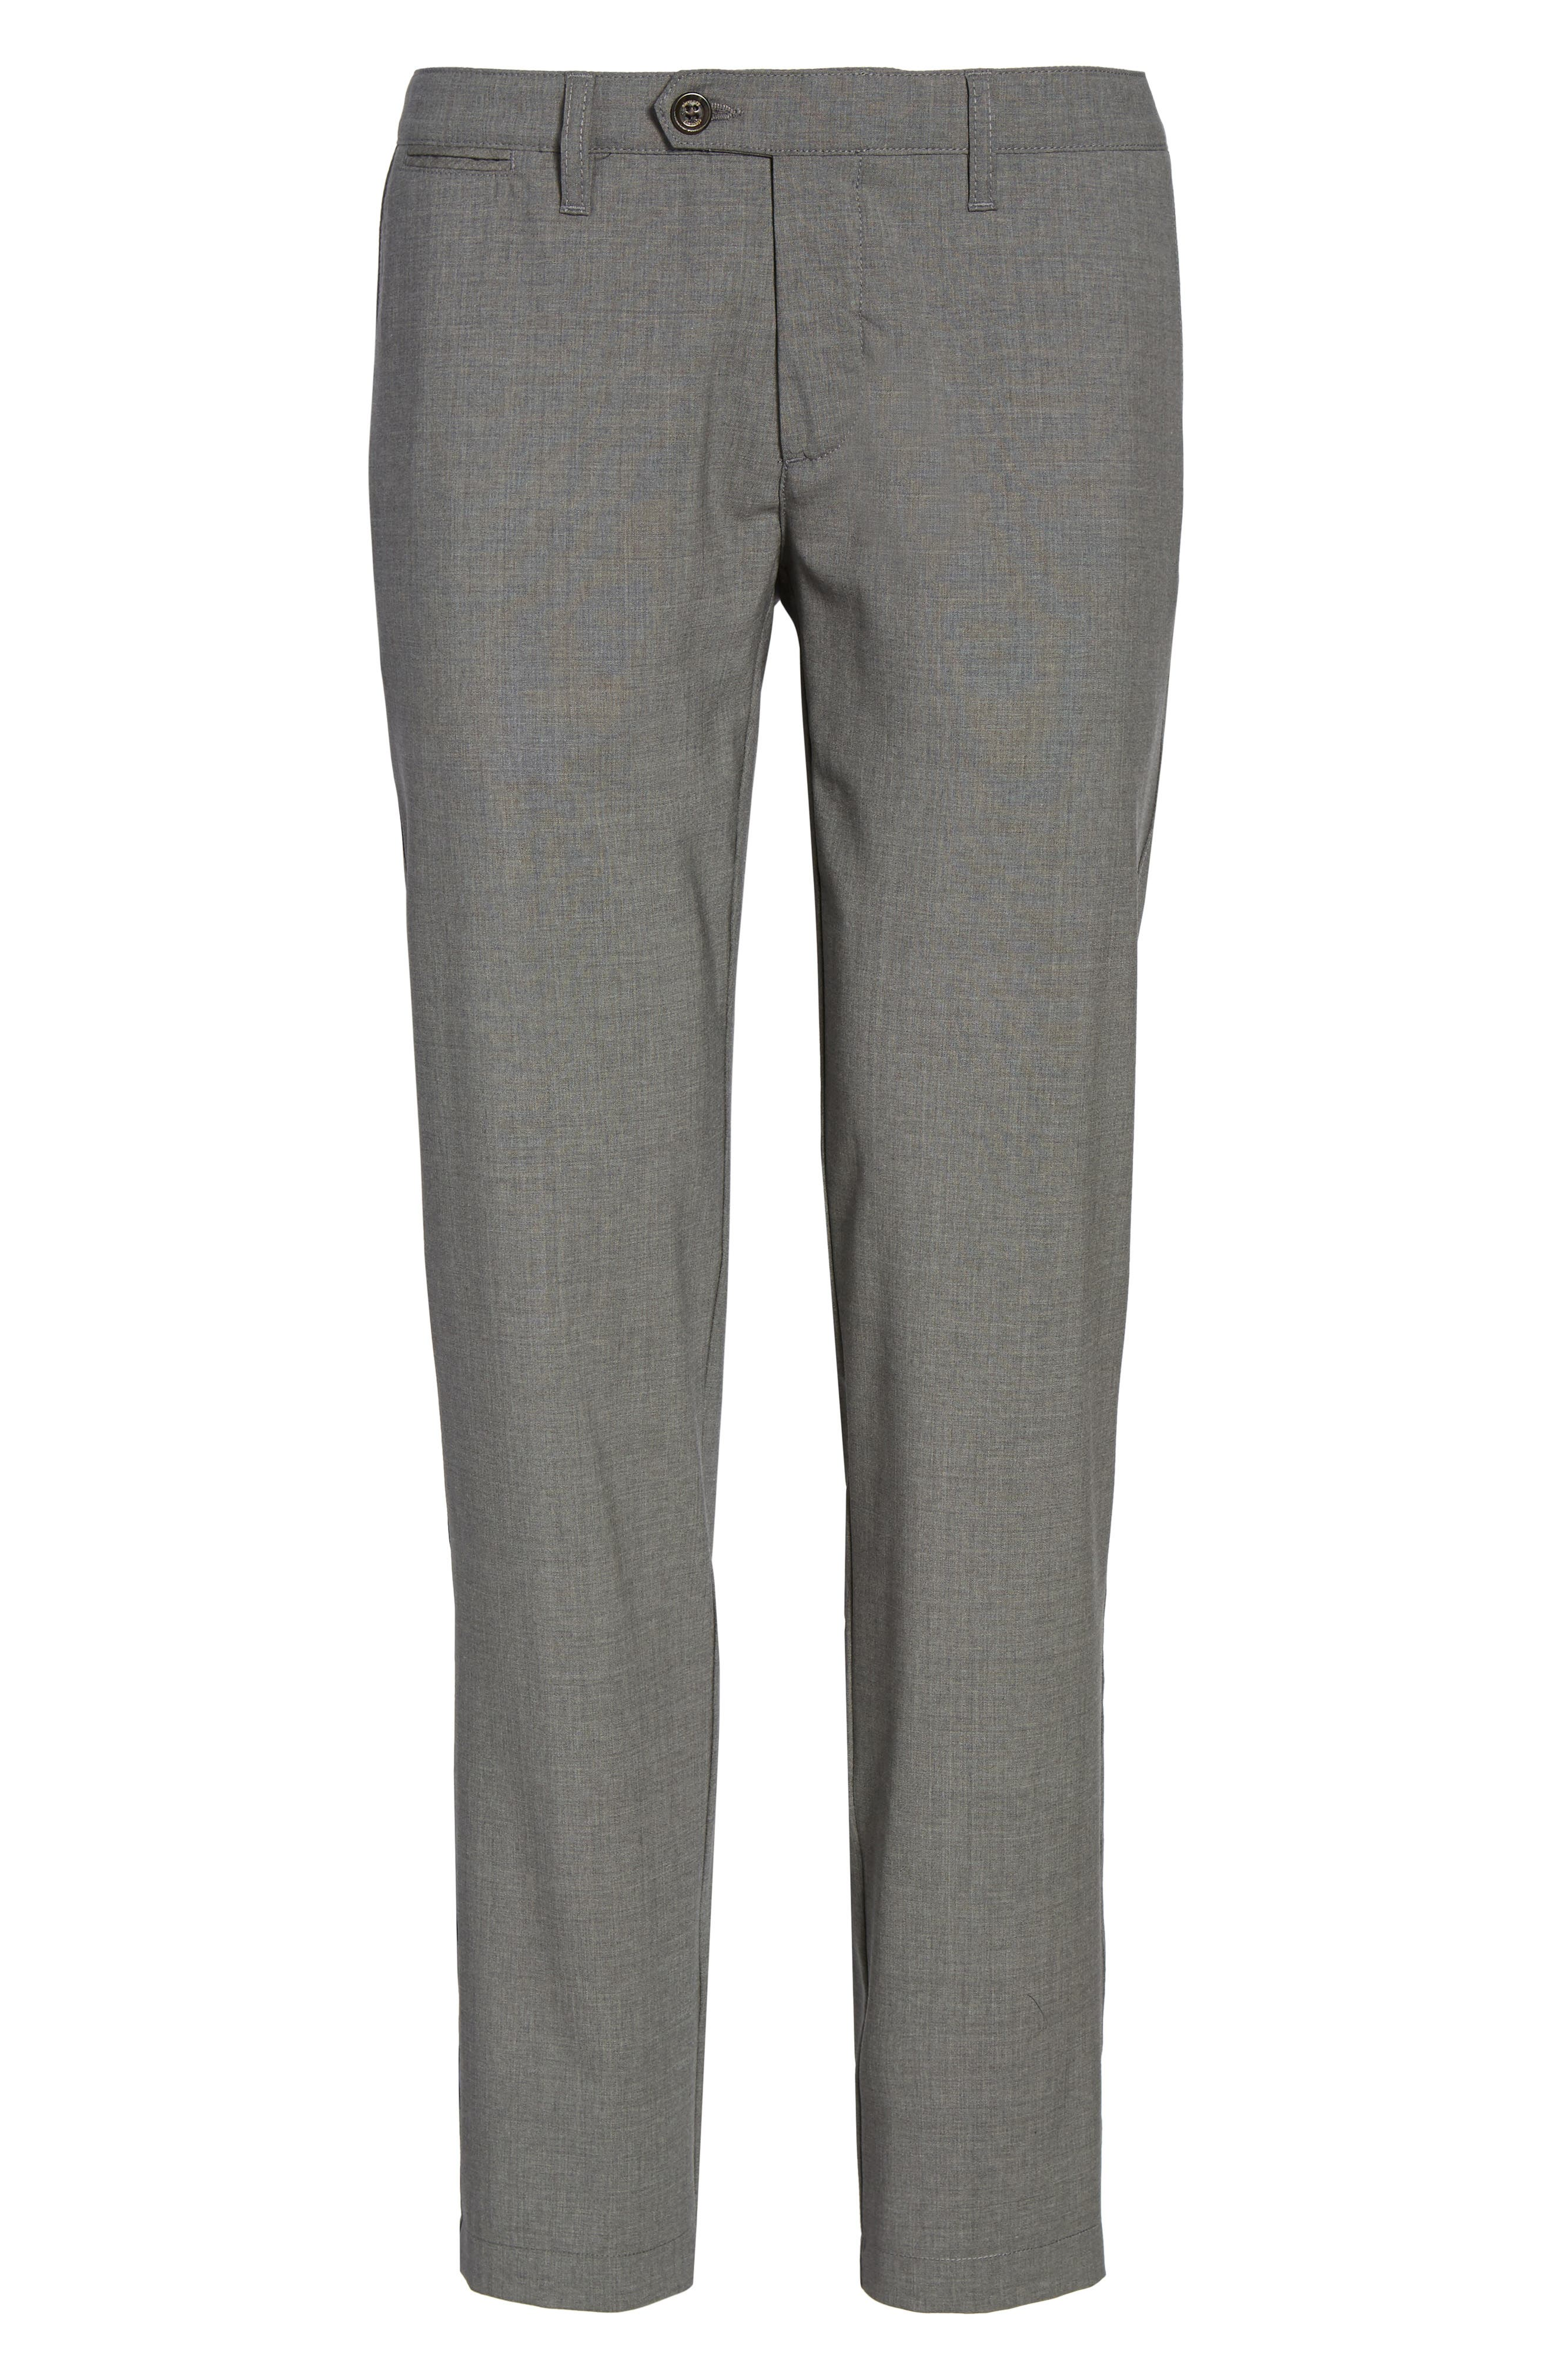 Flat Front Wool Trousers,                             Alternate thumbnail 6, color,                             Medium Grey